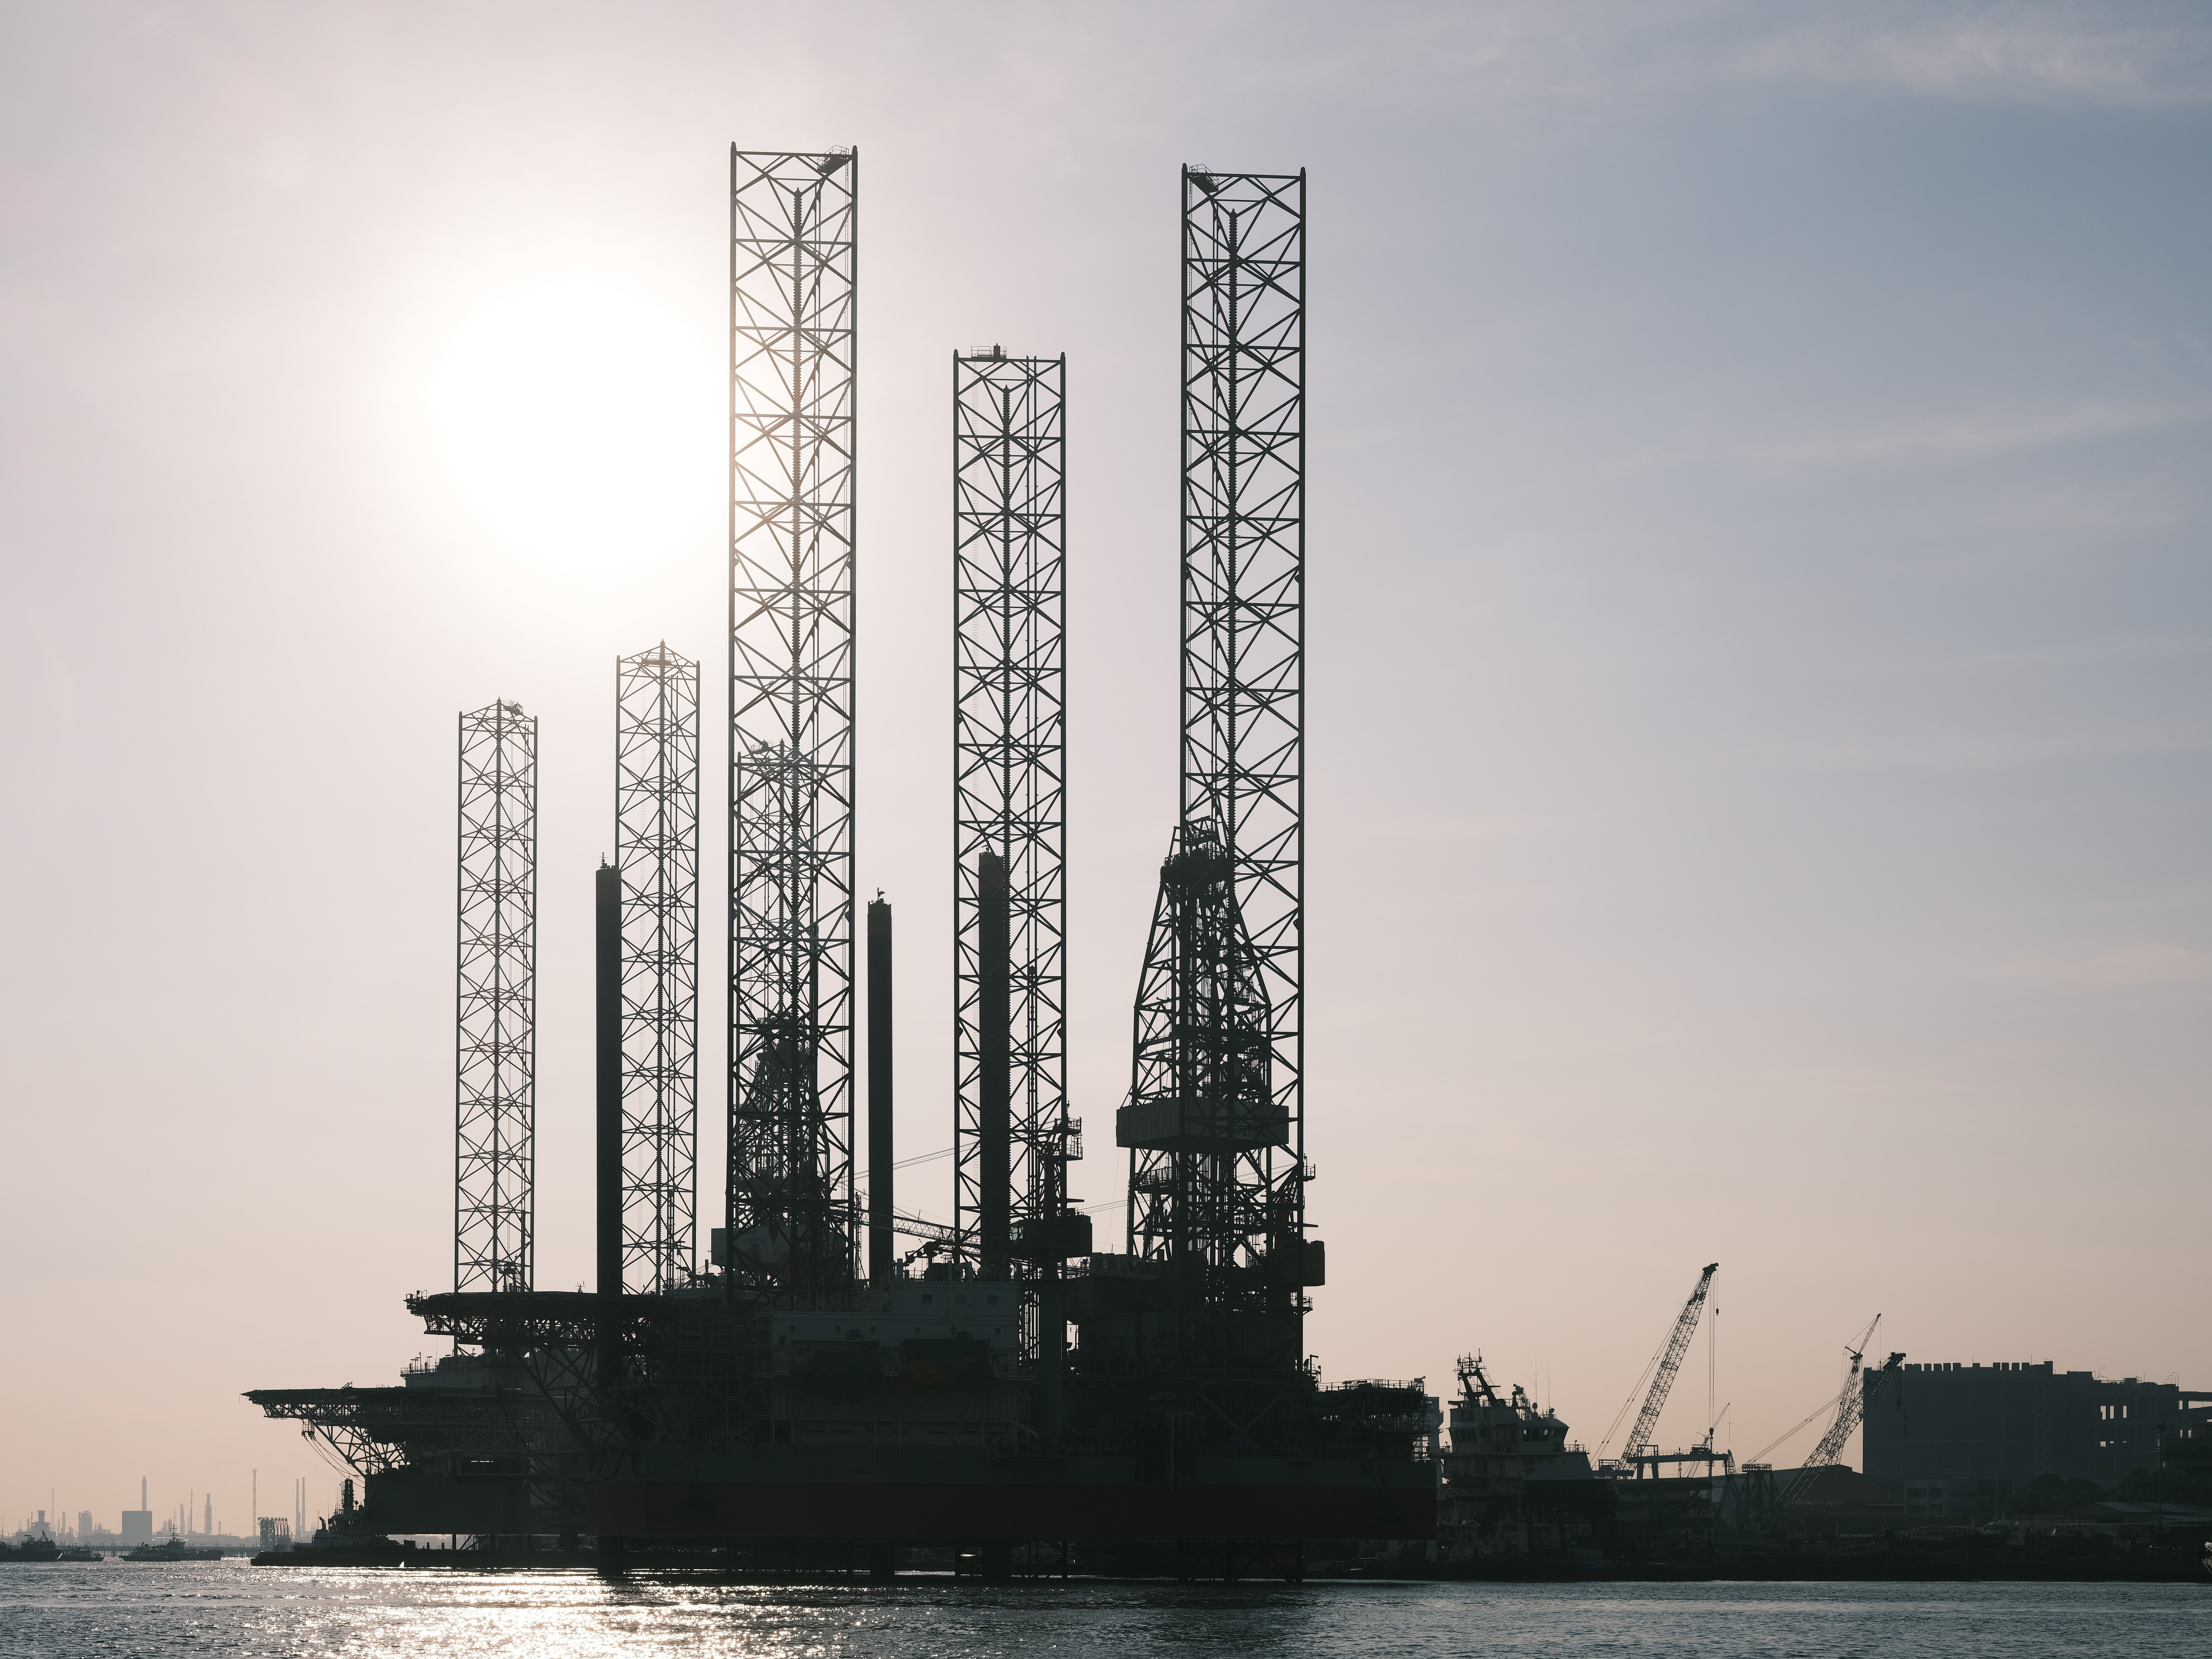 Agents involved in the sale of fuels, ores, metals and industrial chemicals in Põltsamaa